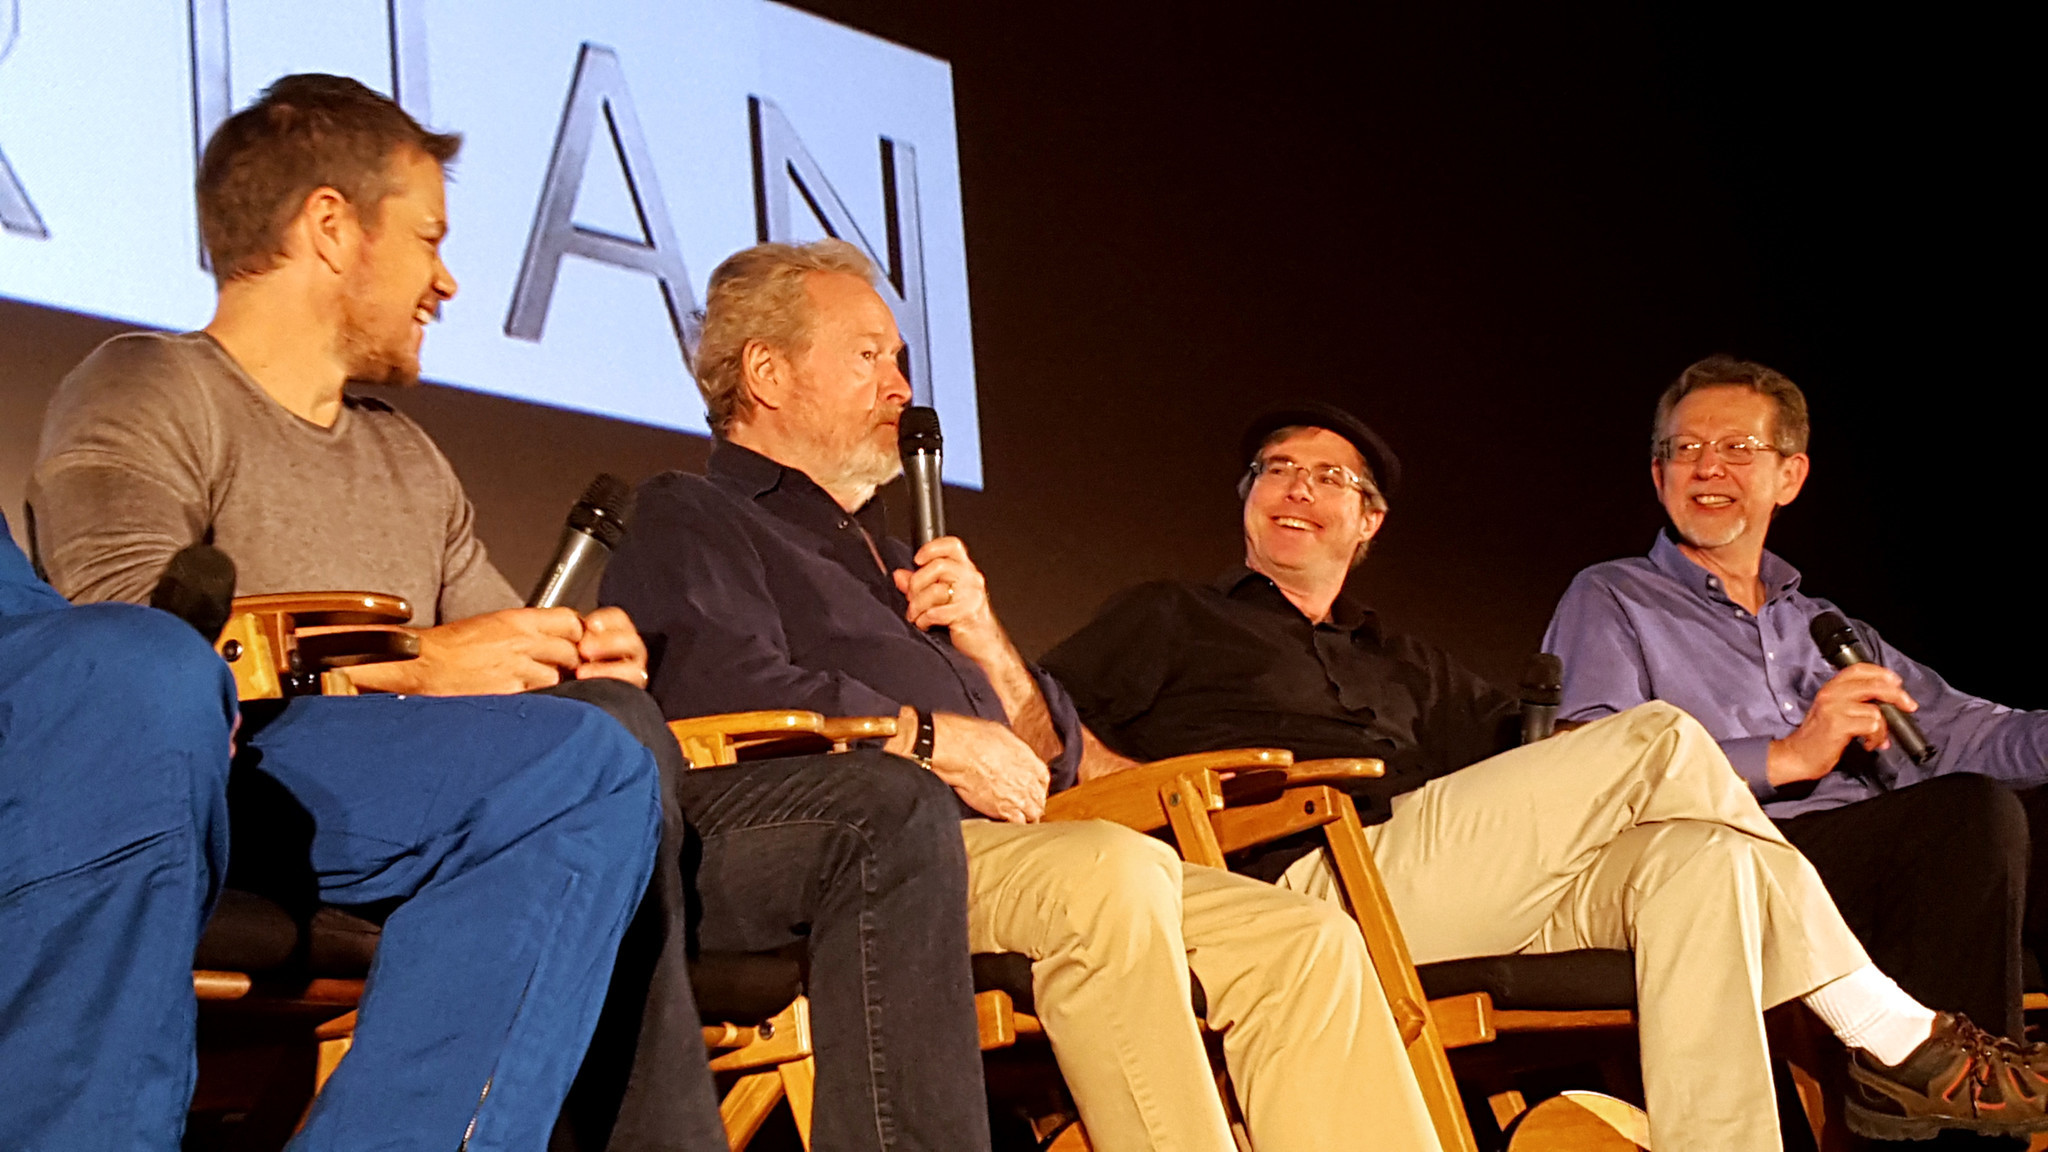 Matt Damon, Ridley Scott, Andy Weir and NASA scientist Jim Green discuss Mars and the film 'The Martian' in 2015.